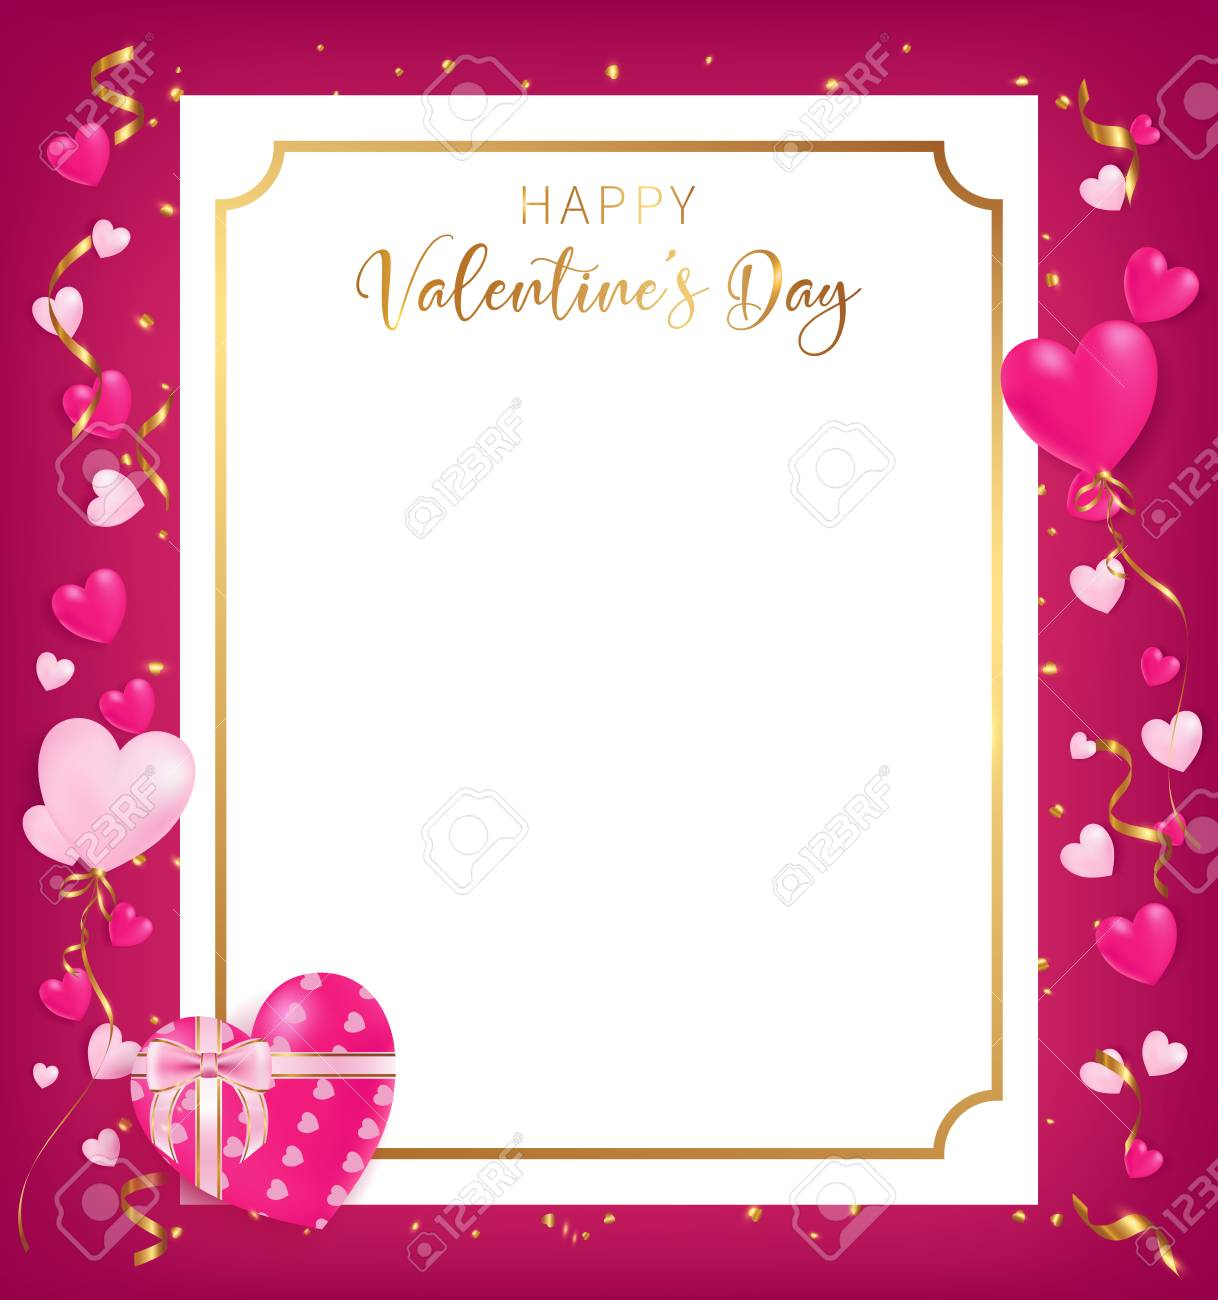 Valentine S Day Banner Template With Heart And Confetti Border